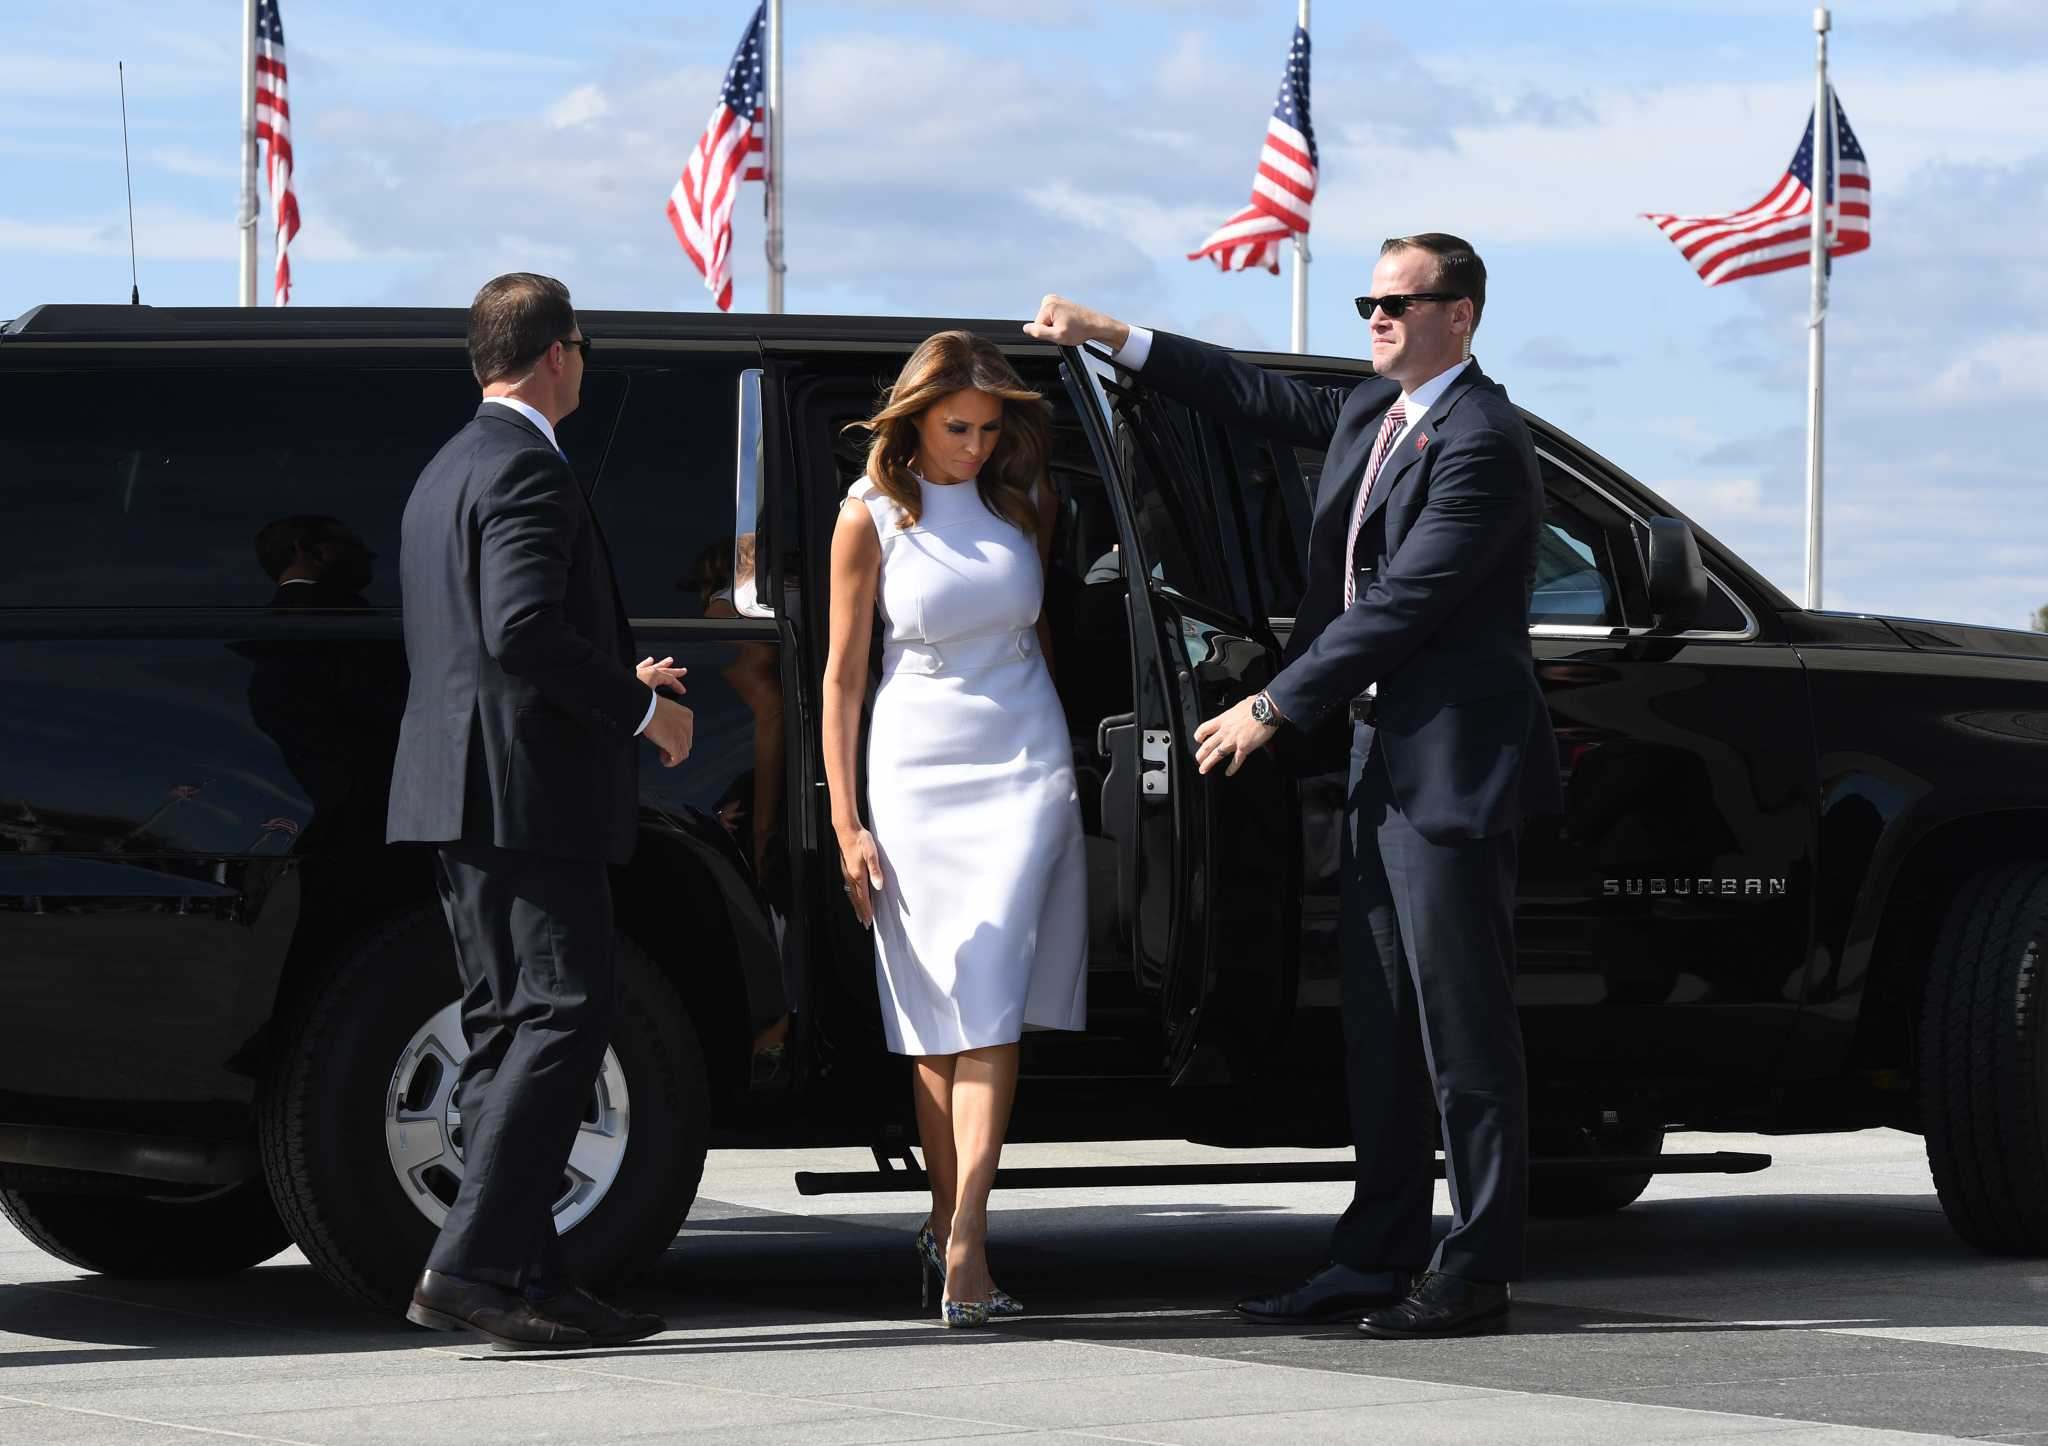 Melania Trump is busier than you think, but as quiet as ever